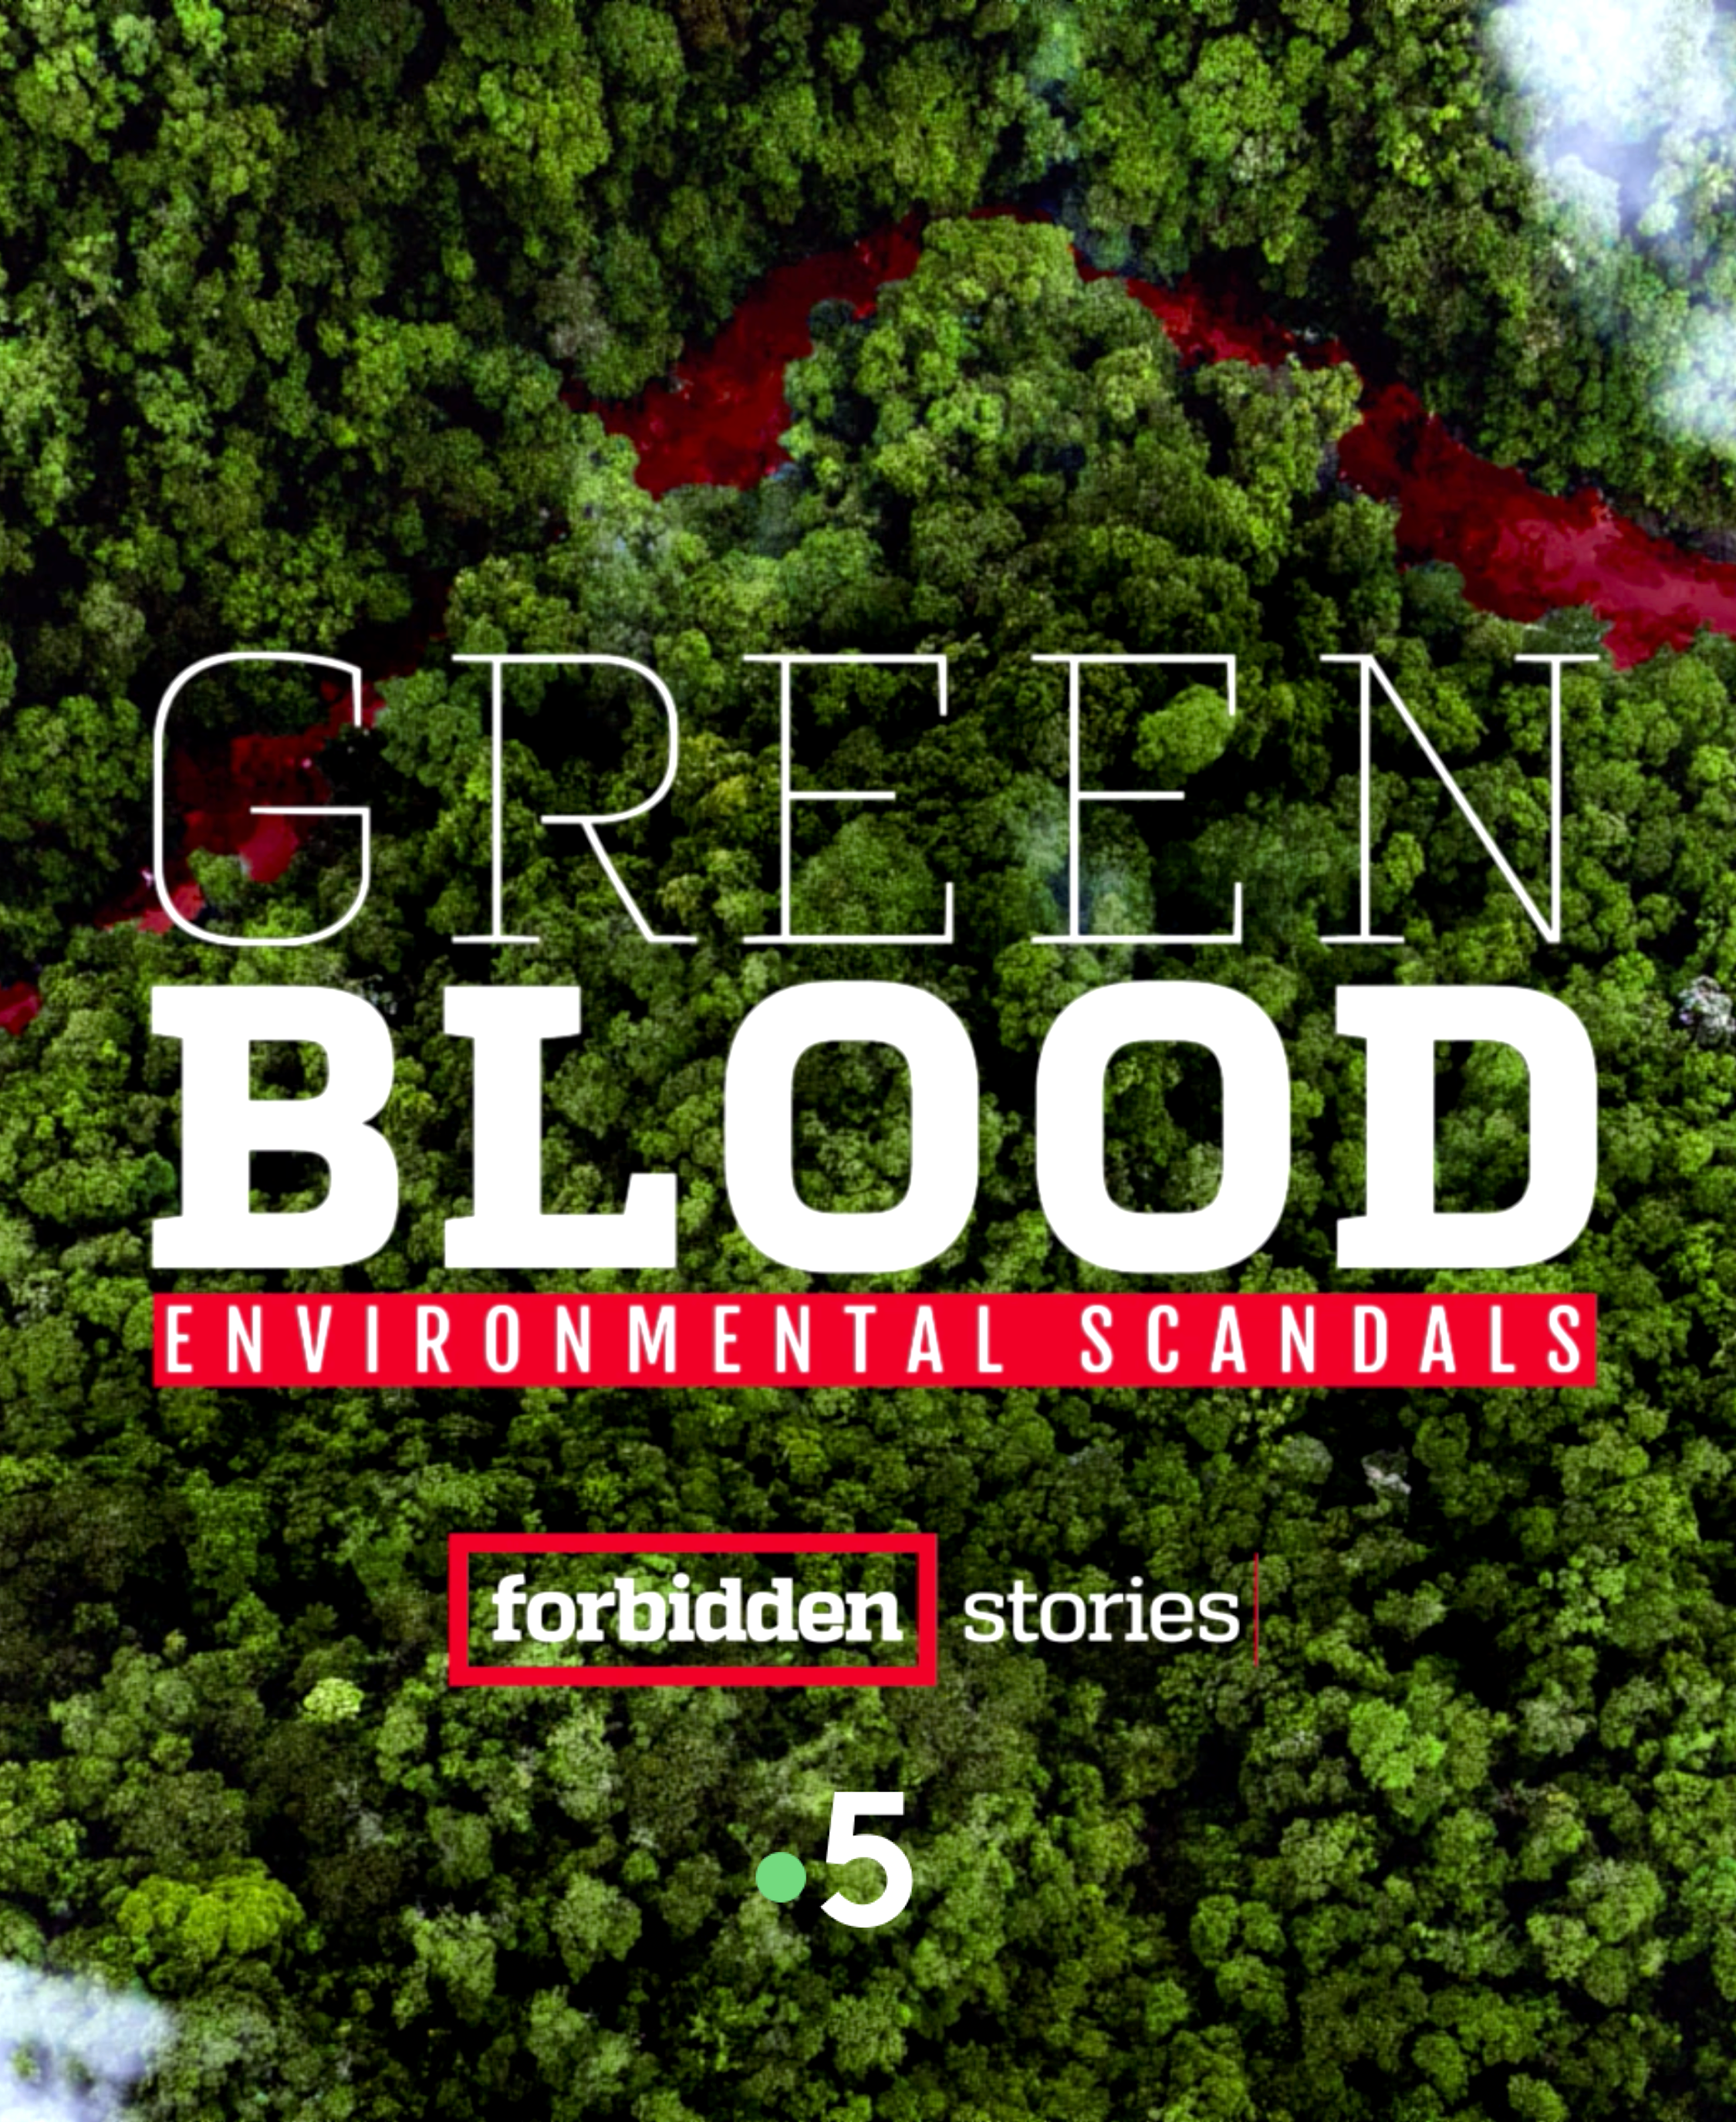 SYNOPSIS - The Green Blood documentary series will follow in real time the work of sixty of the best investigative journalists in the world, exposing several environmental scandals on different continents.